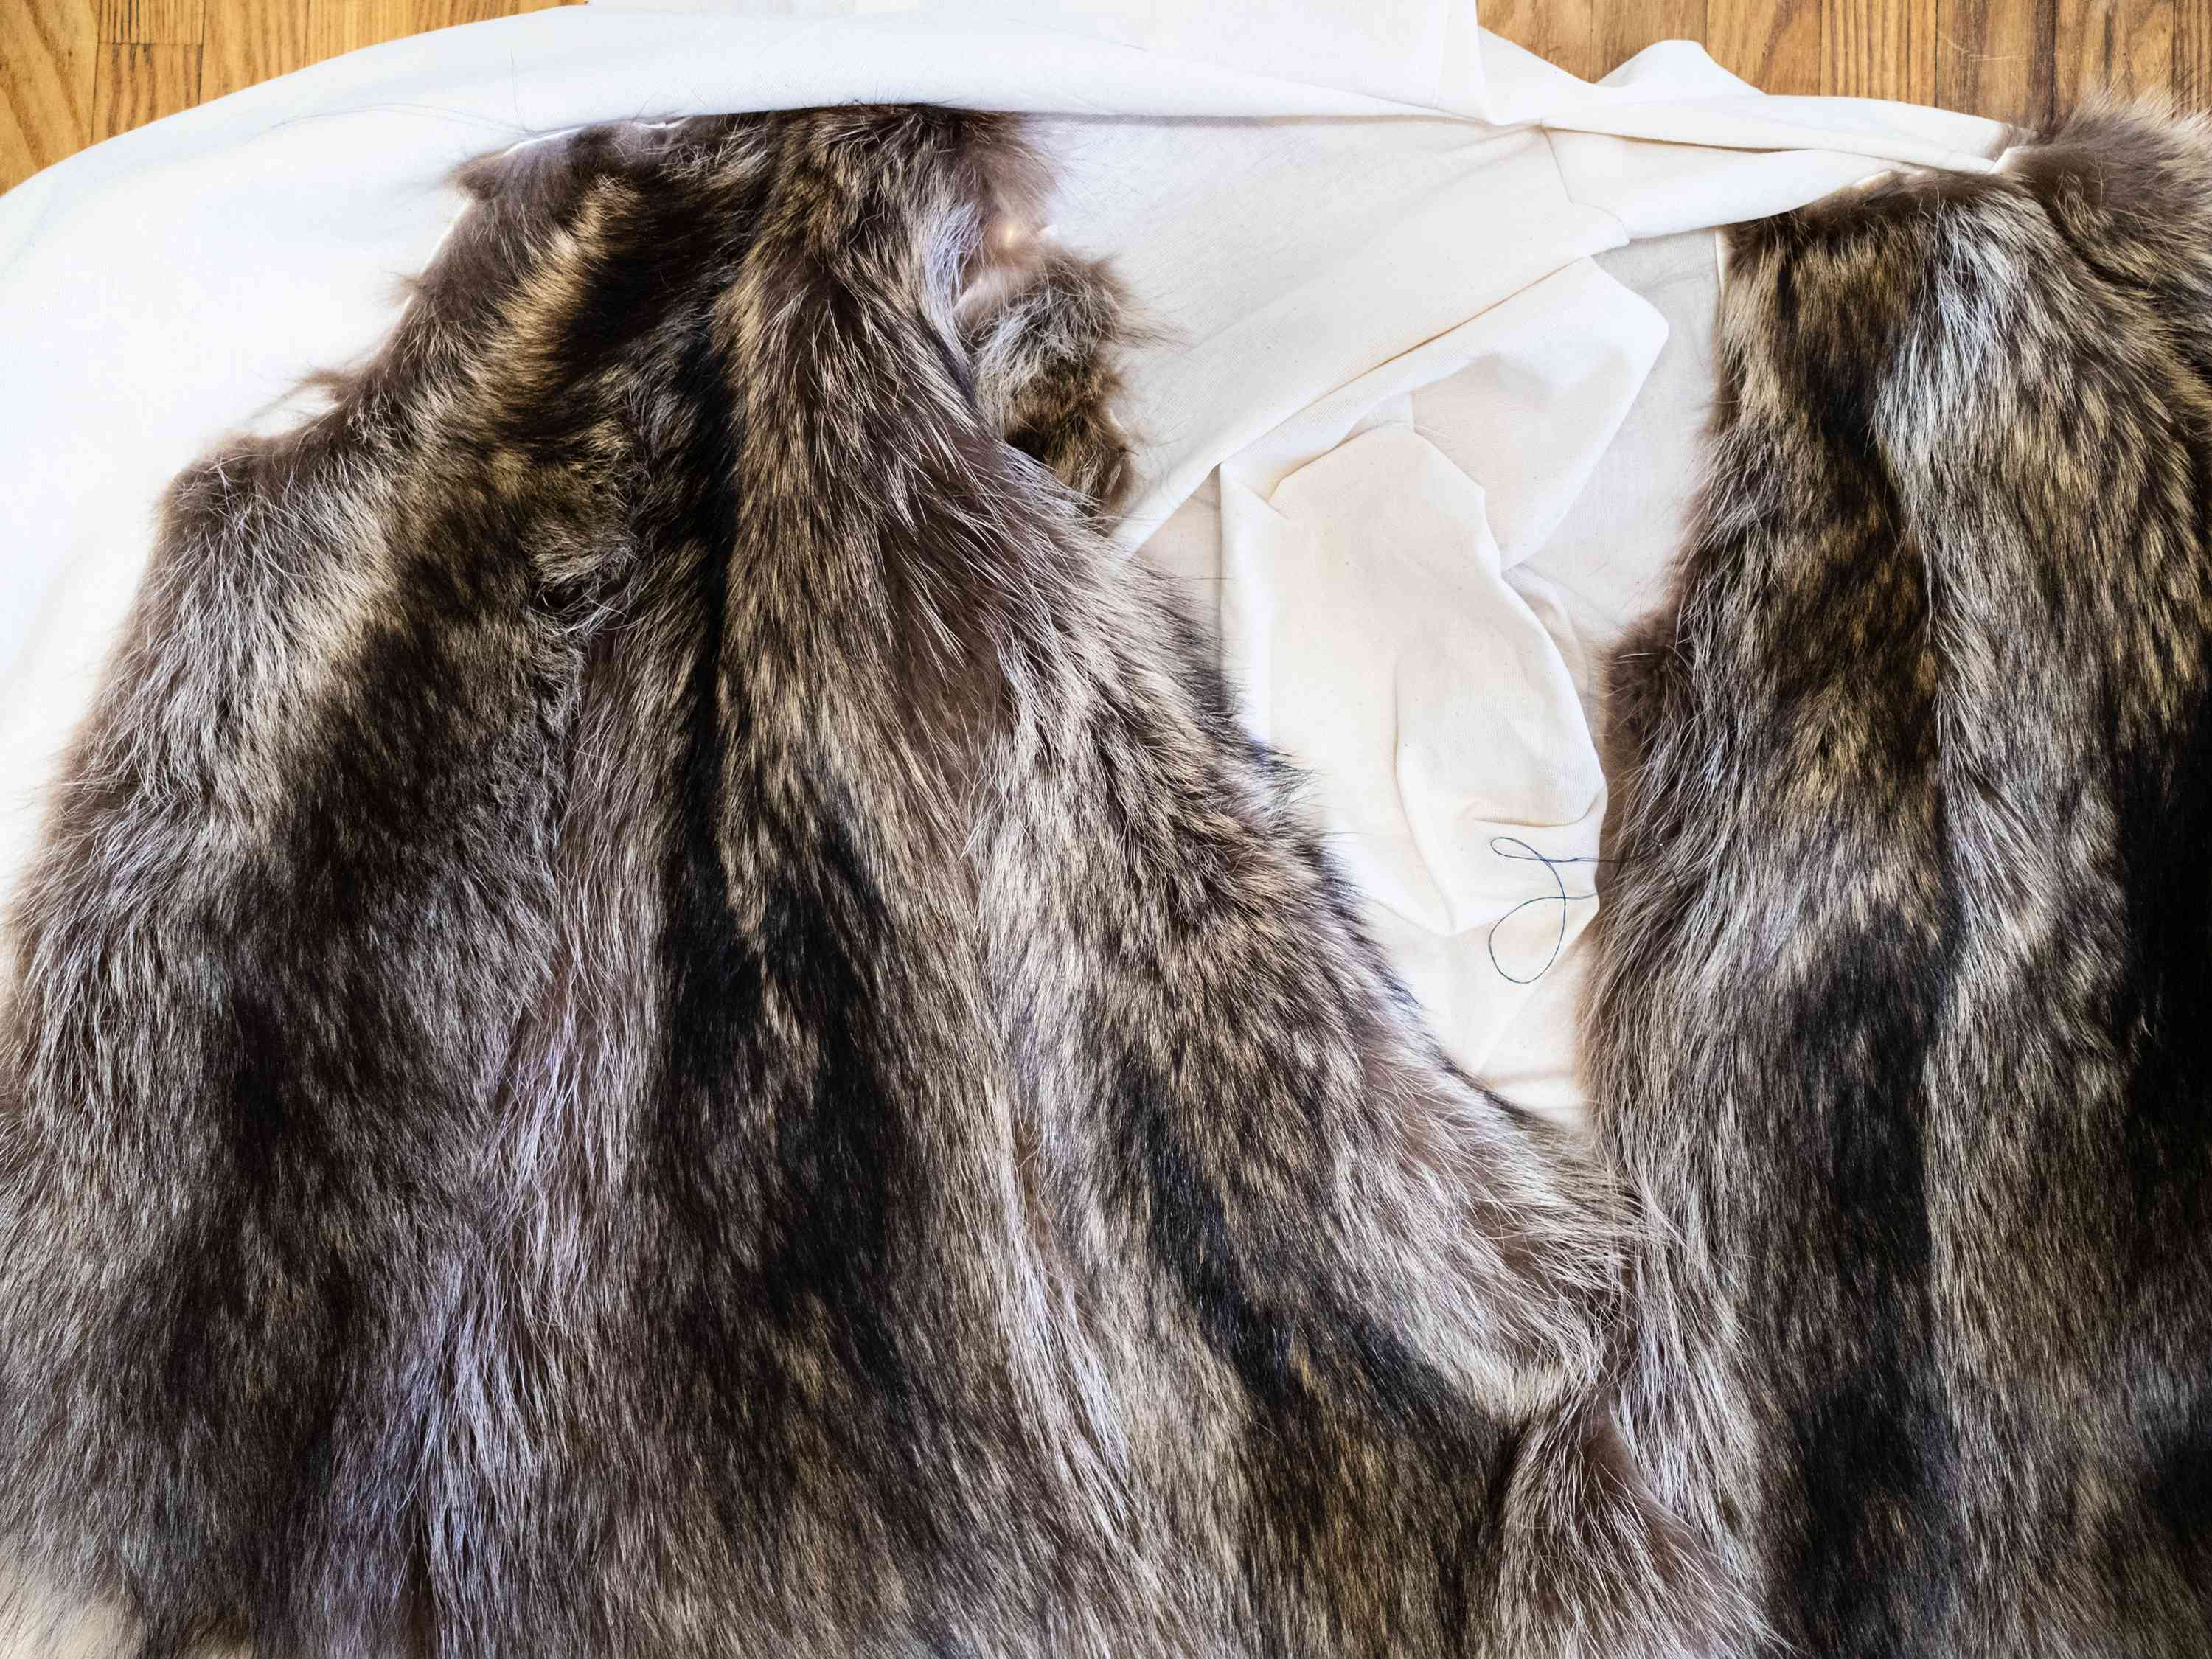 fur pelts on textile coat layout on table